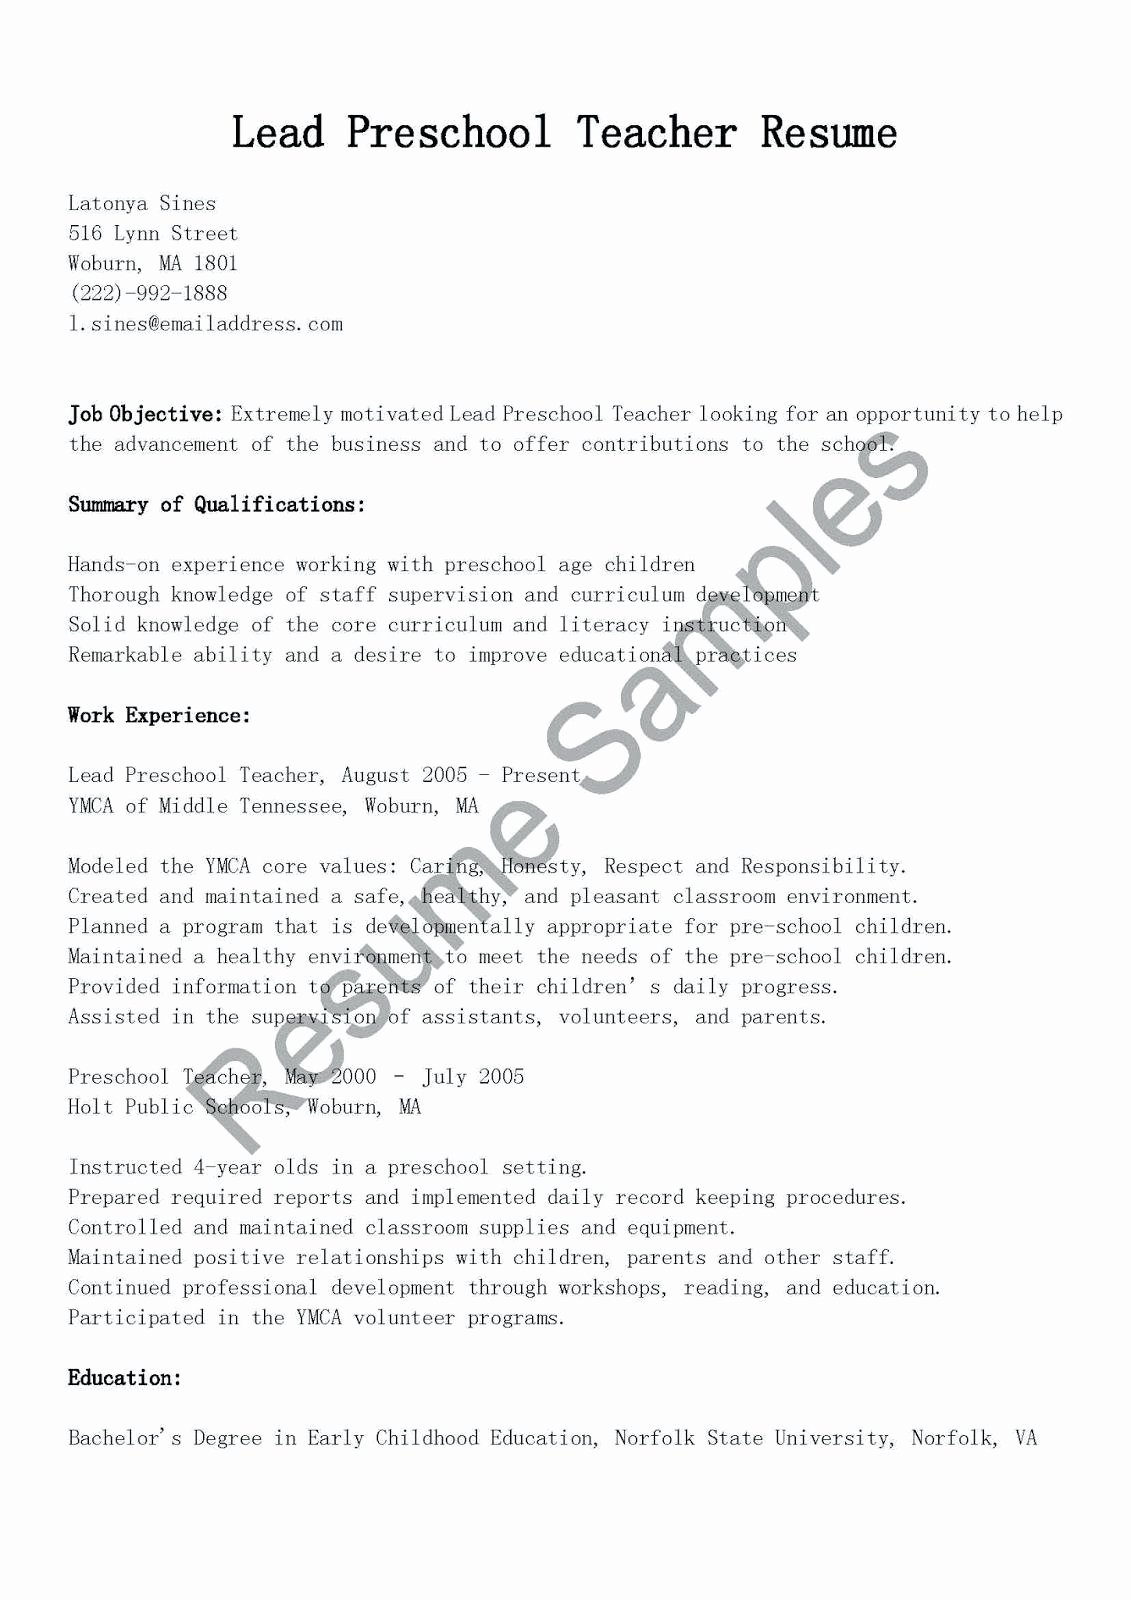 Teaching assistant Recommendation Letter New Sample Letter Re Mendation for Teaching Position